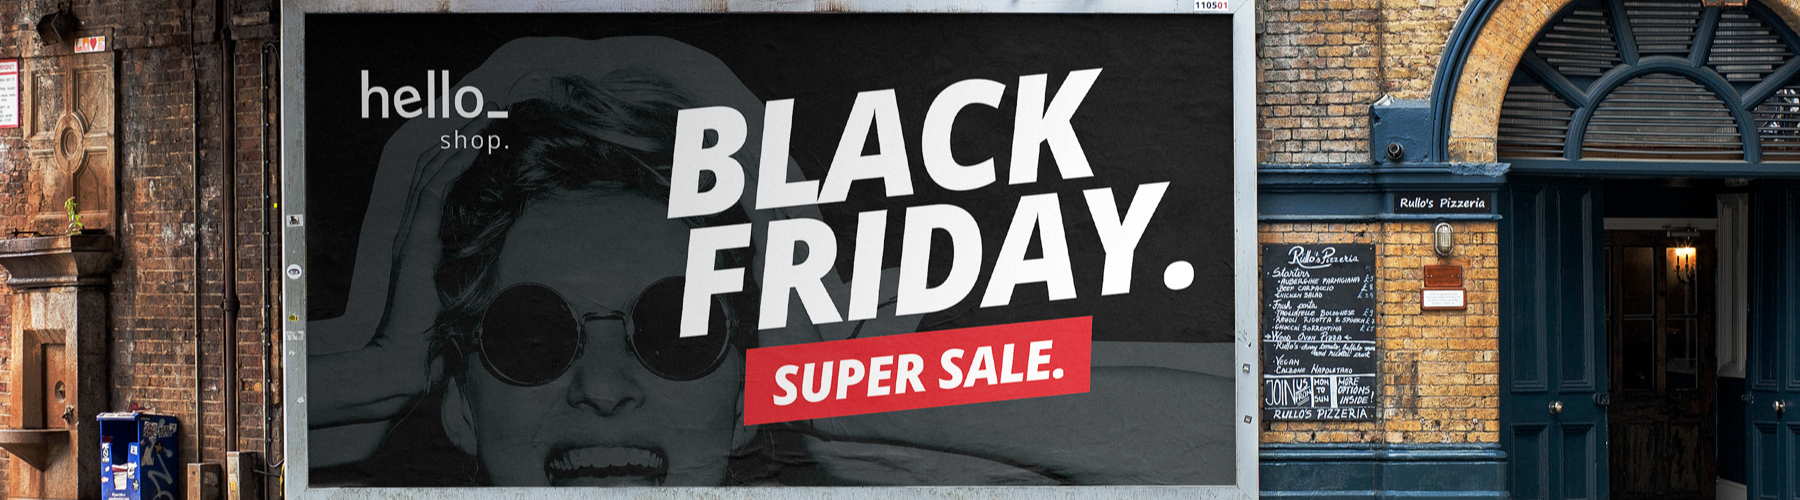 Get ready for Black Friday with these 6 products